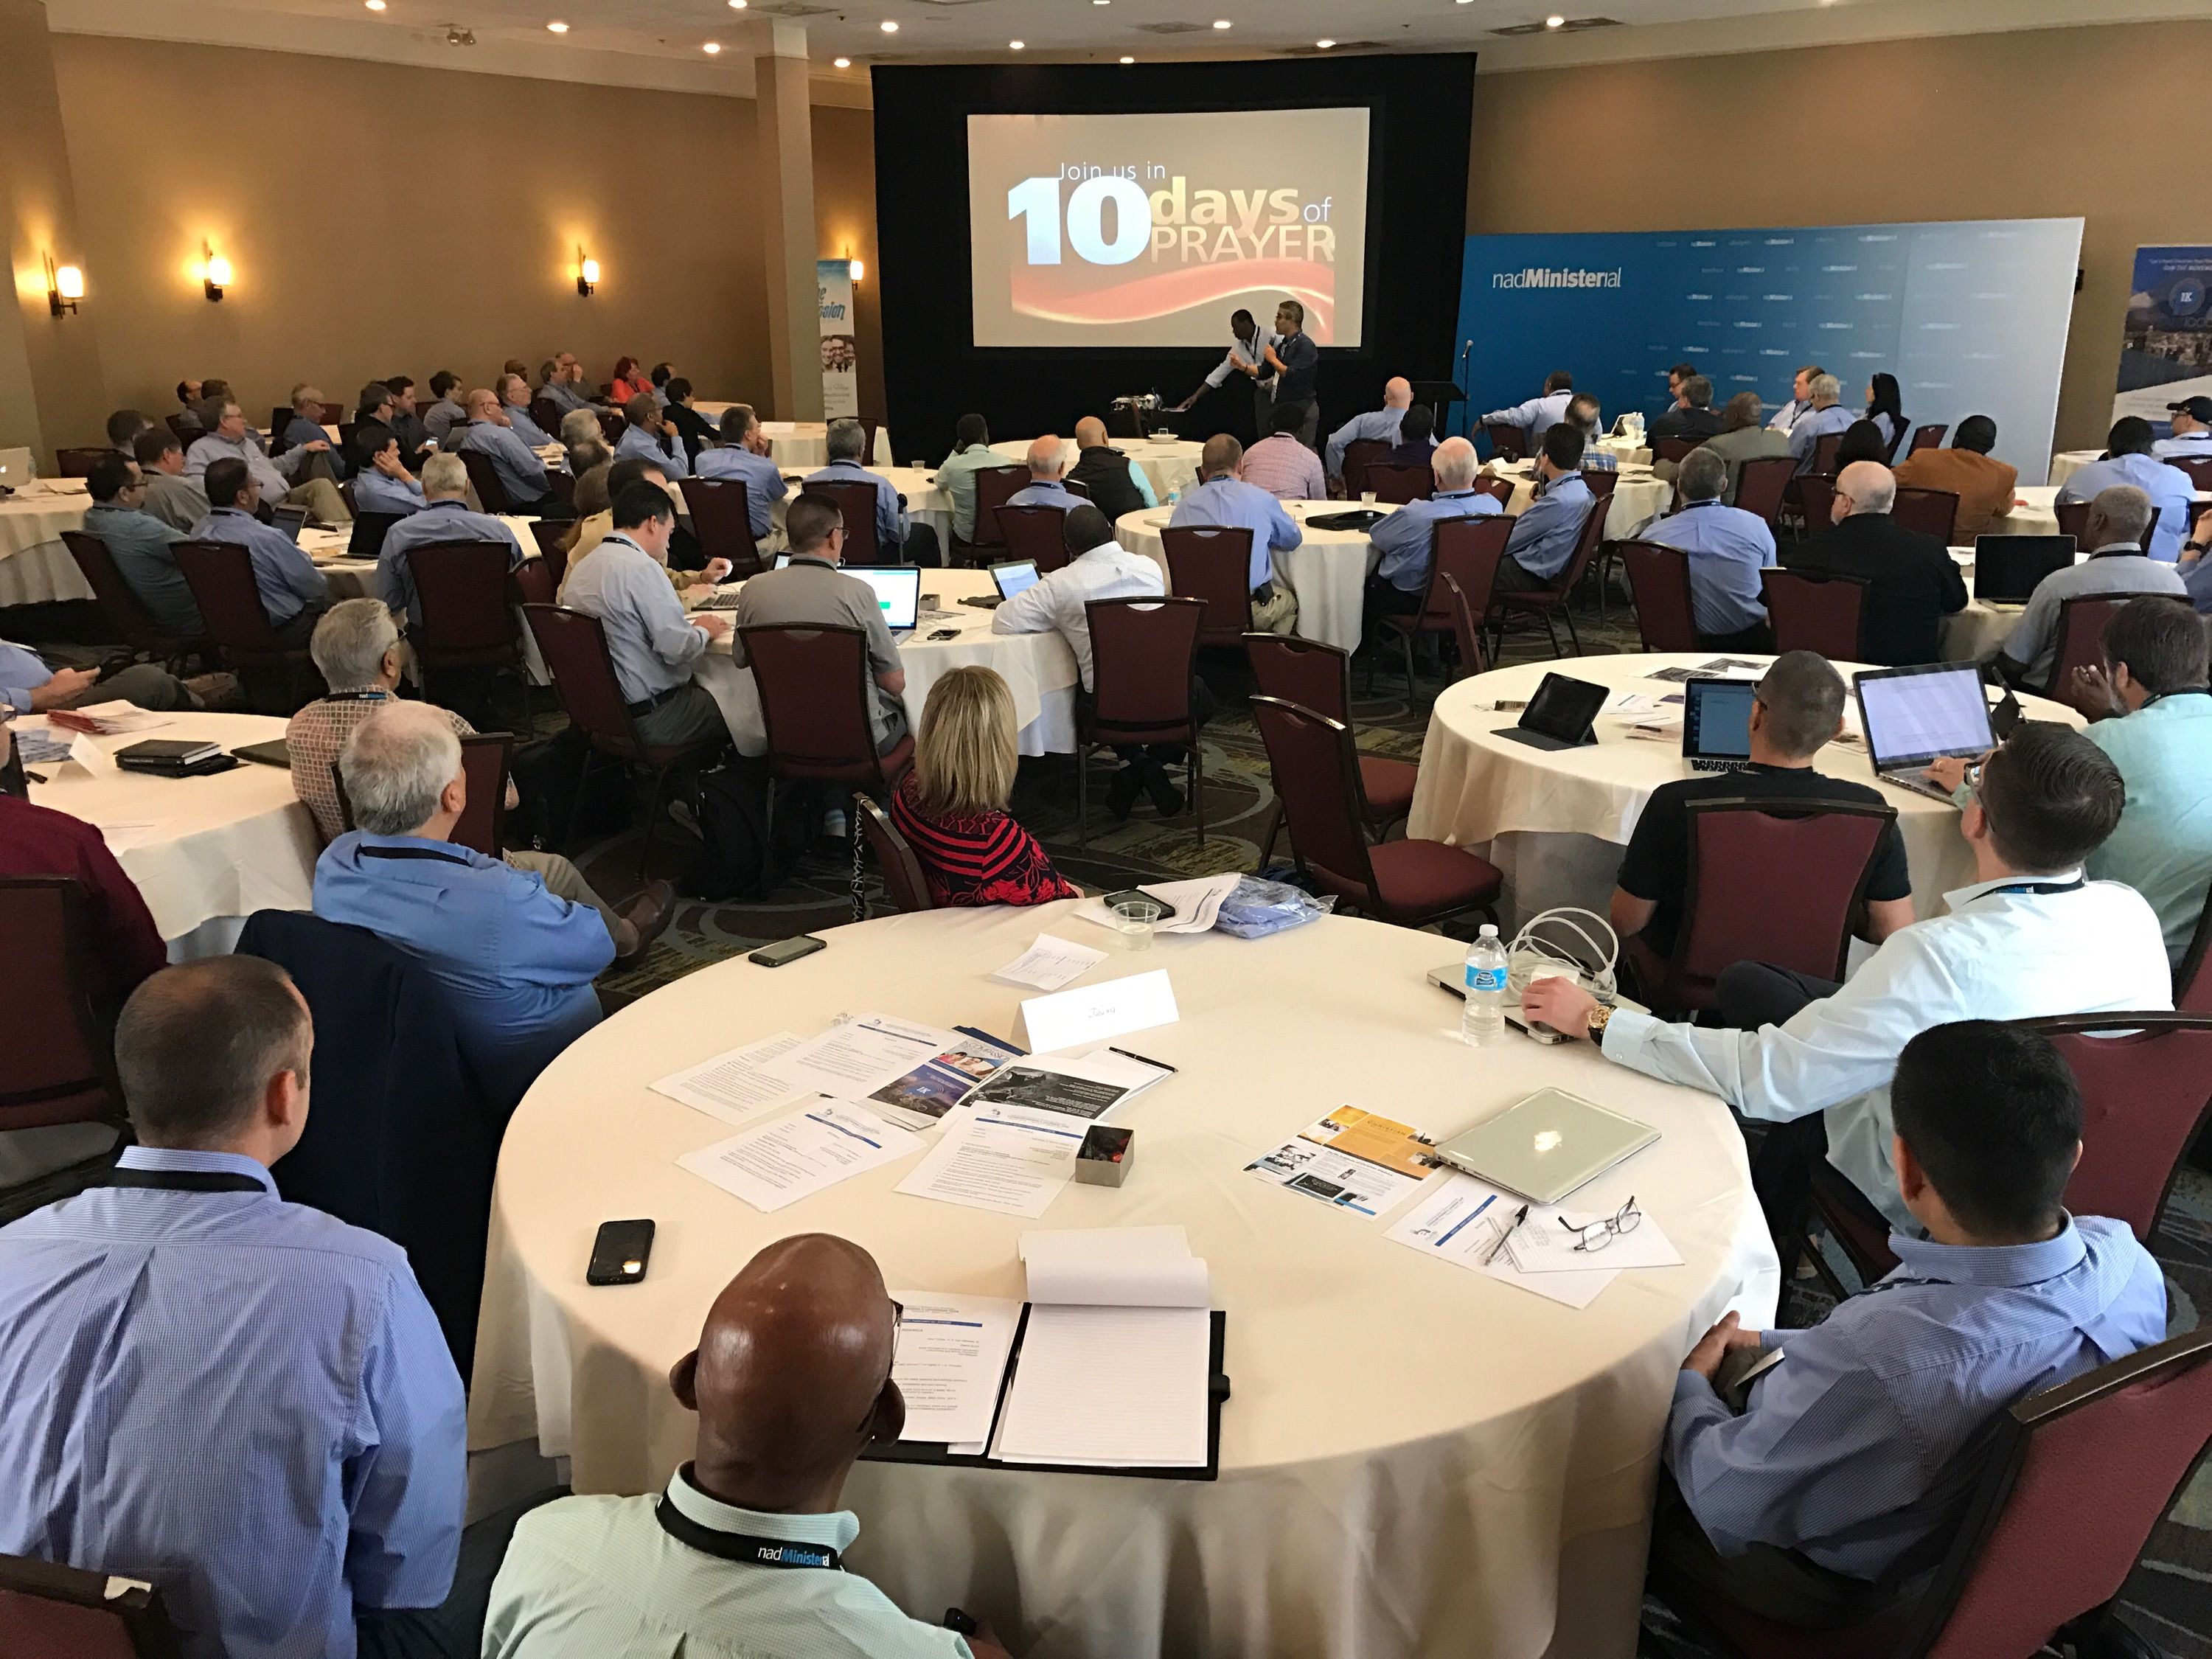 At The eHuddle, Attendees Engage in Evangelistic Leadership